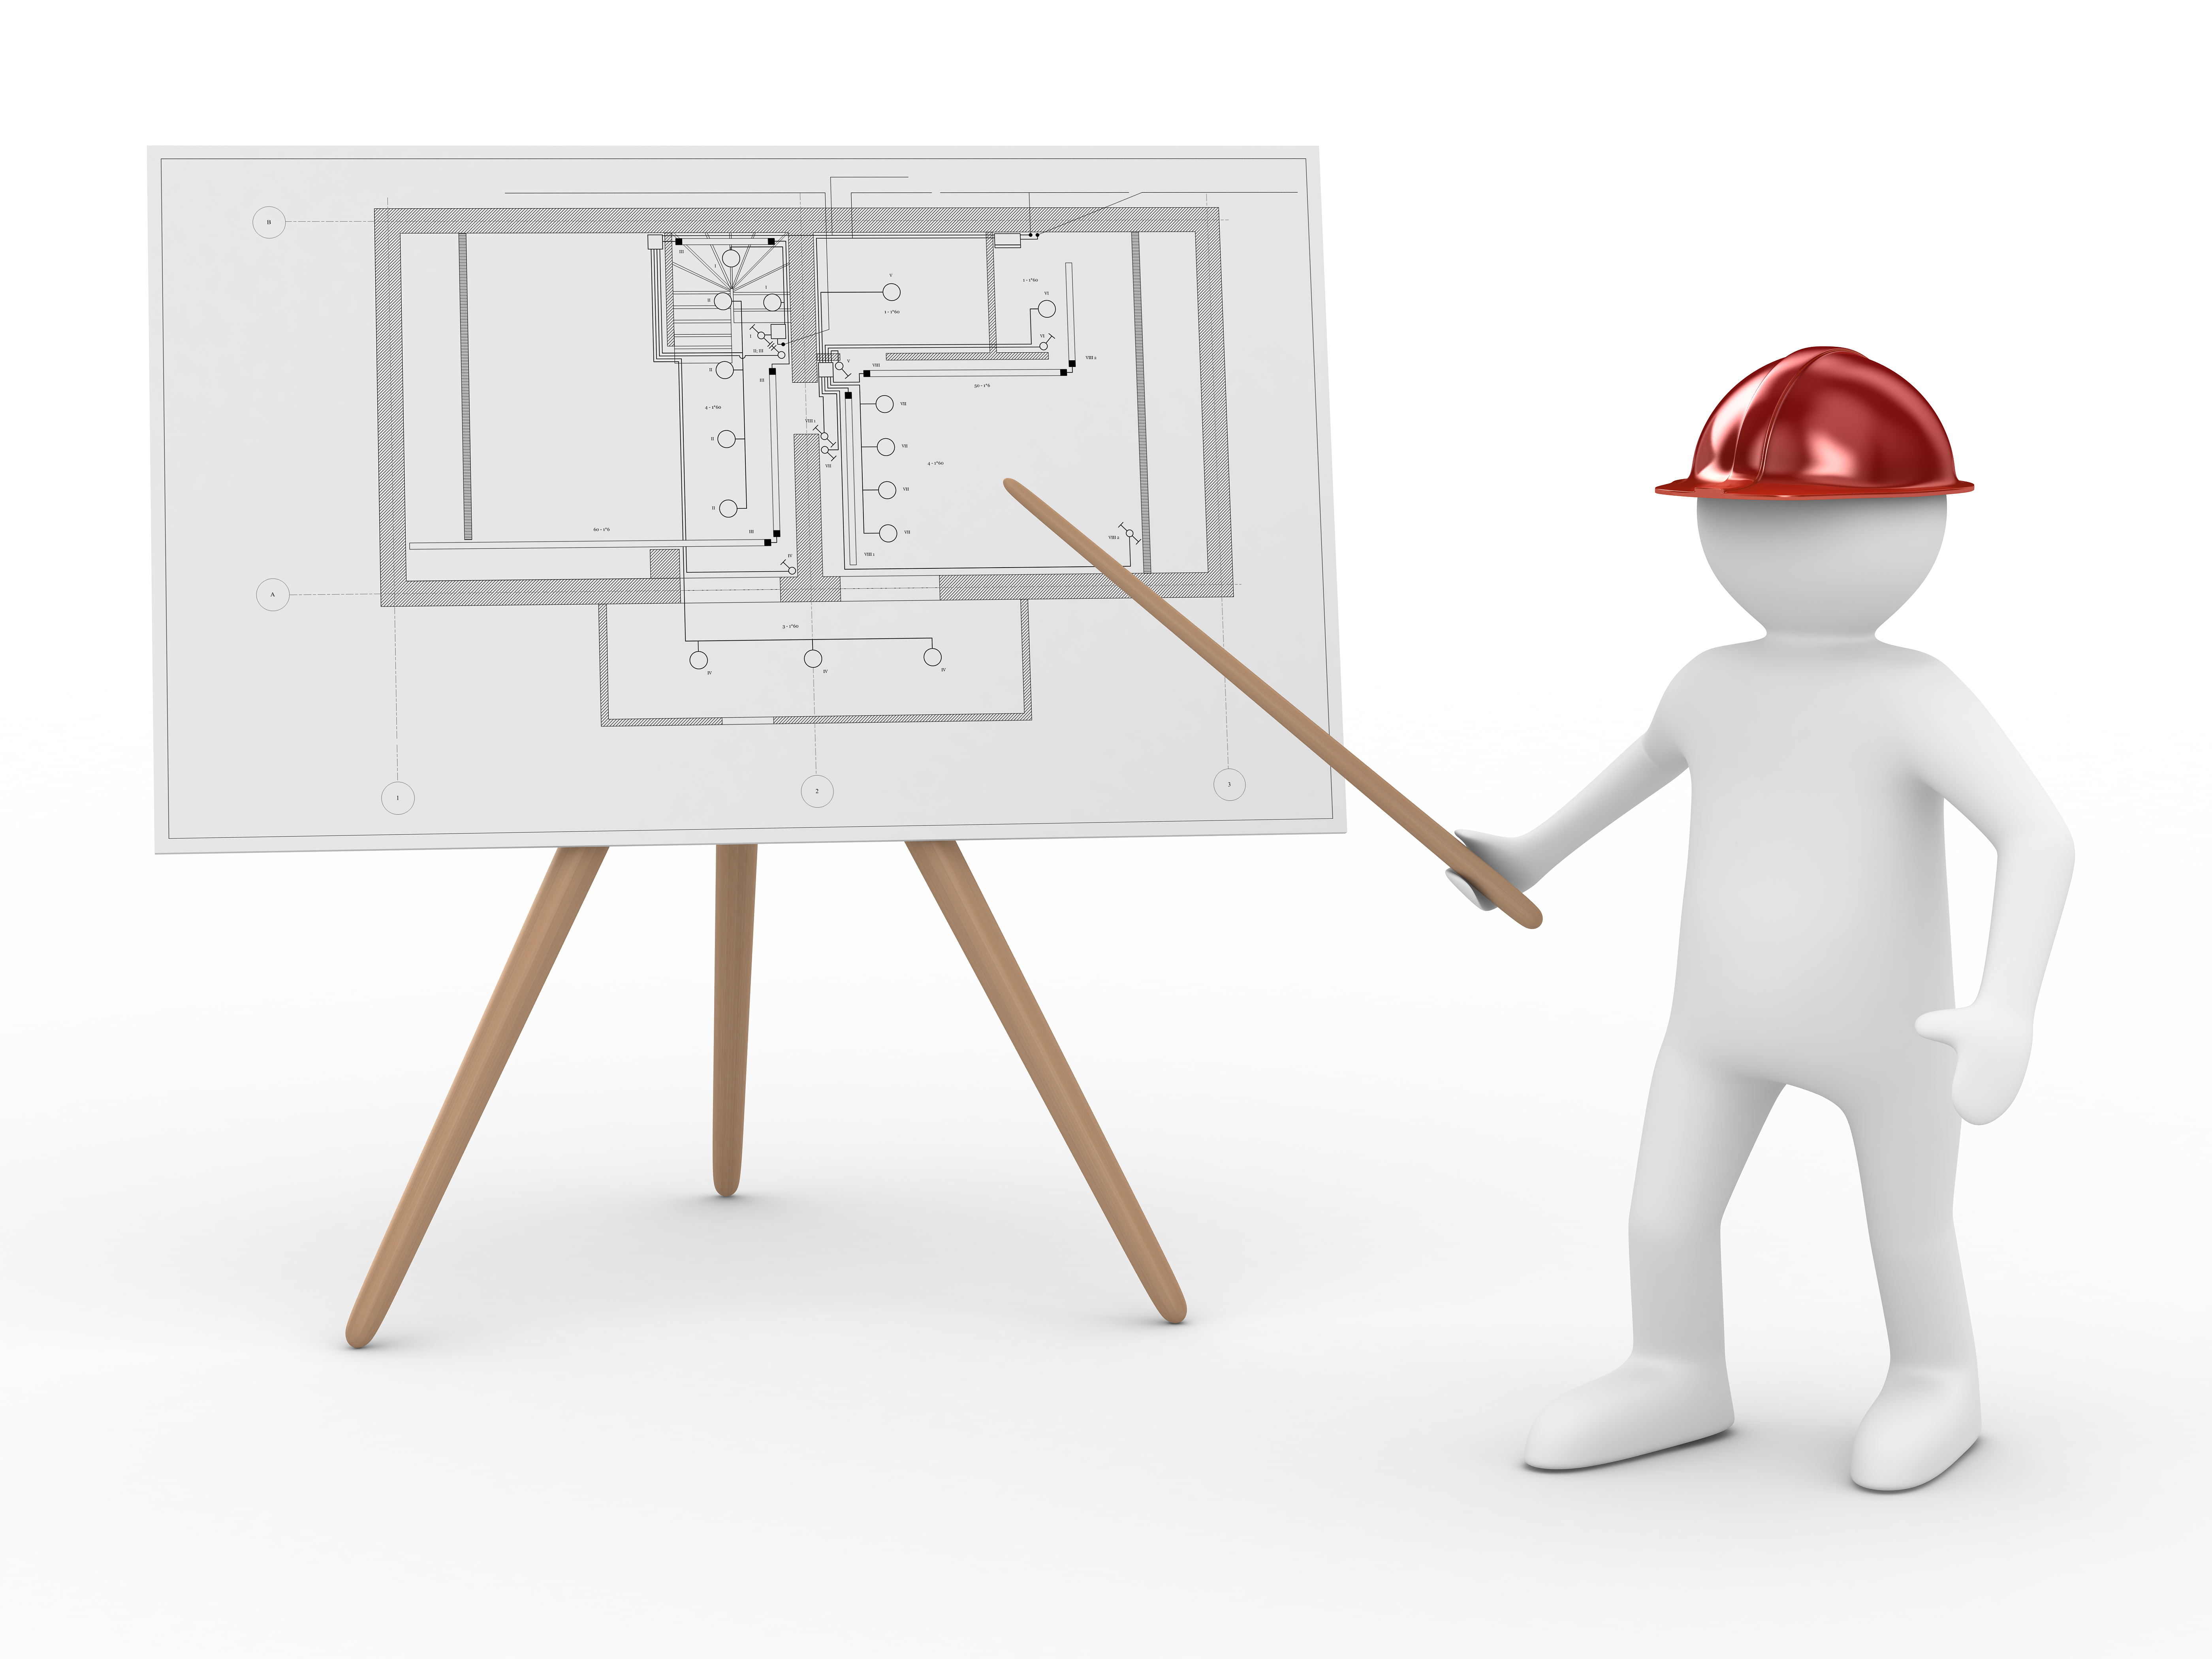 Online Training is Helping Construction Companies Grow their Businesses